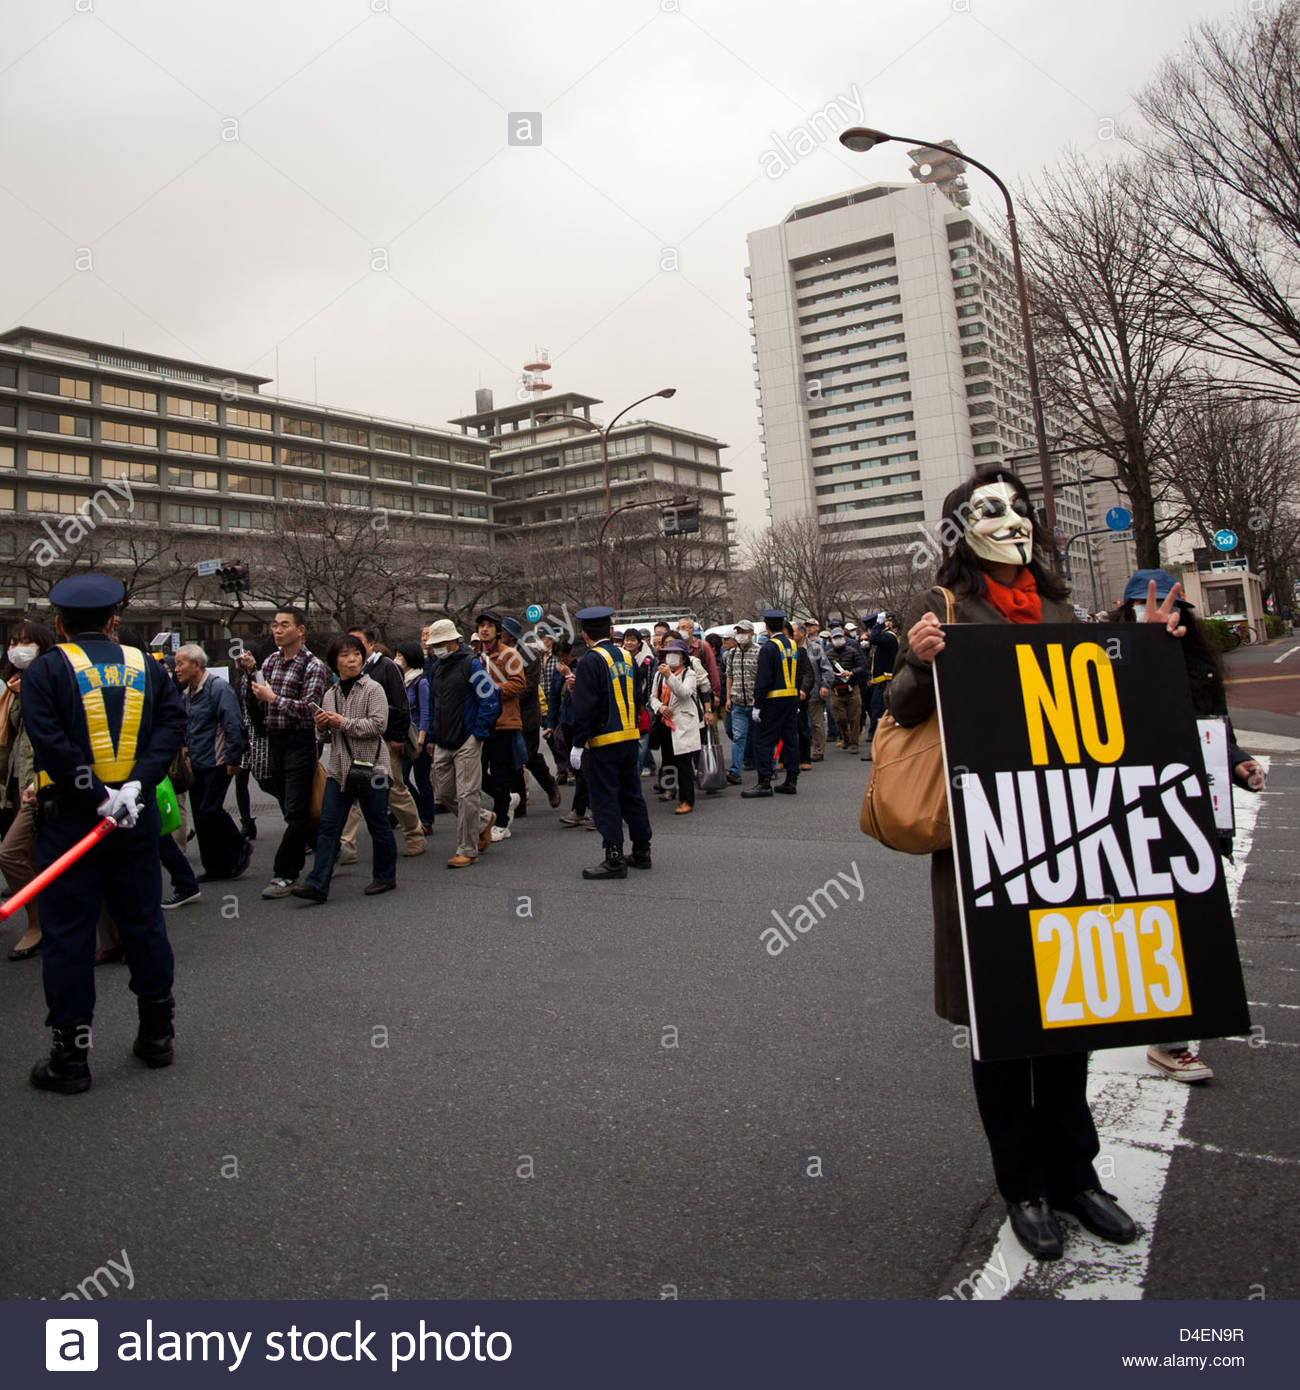 Tens of thousands of protesters march on the Japanese parliament to call for an end to nuclear power in Japan. Stock Photo